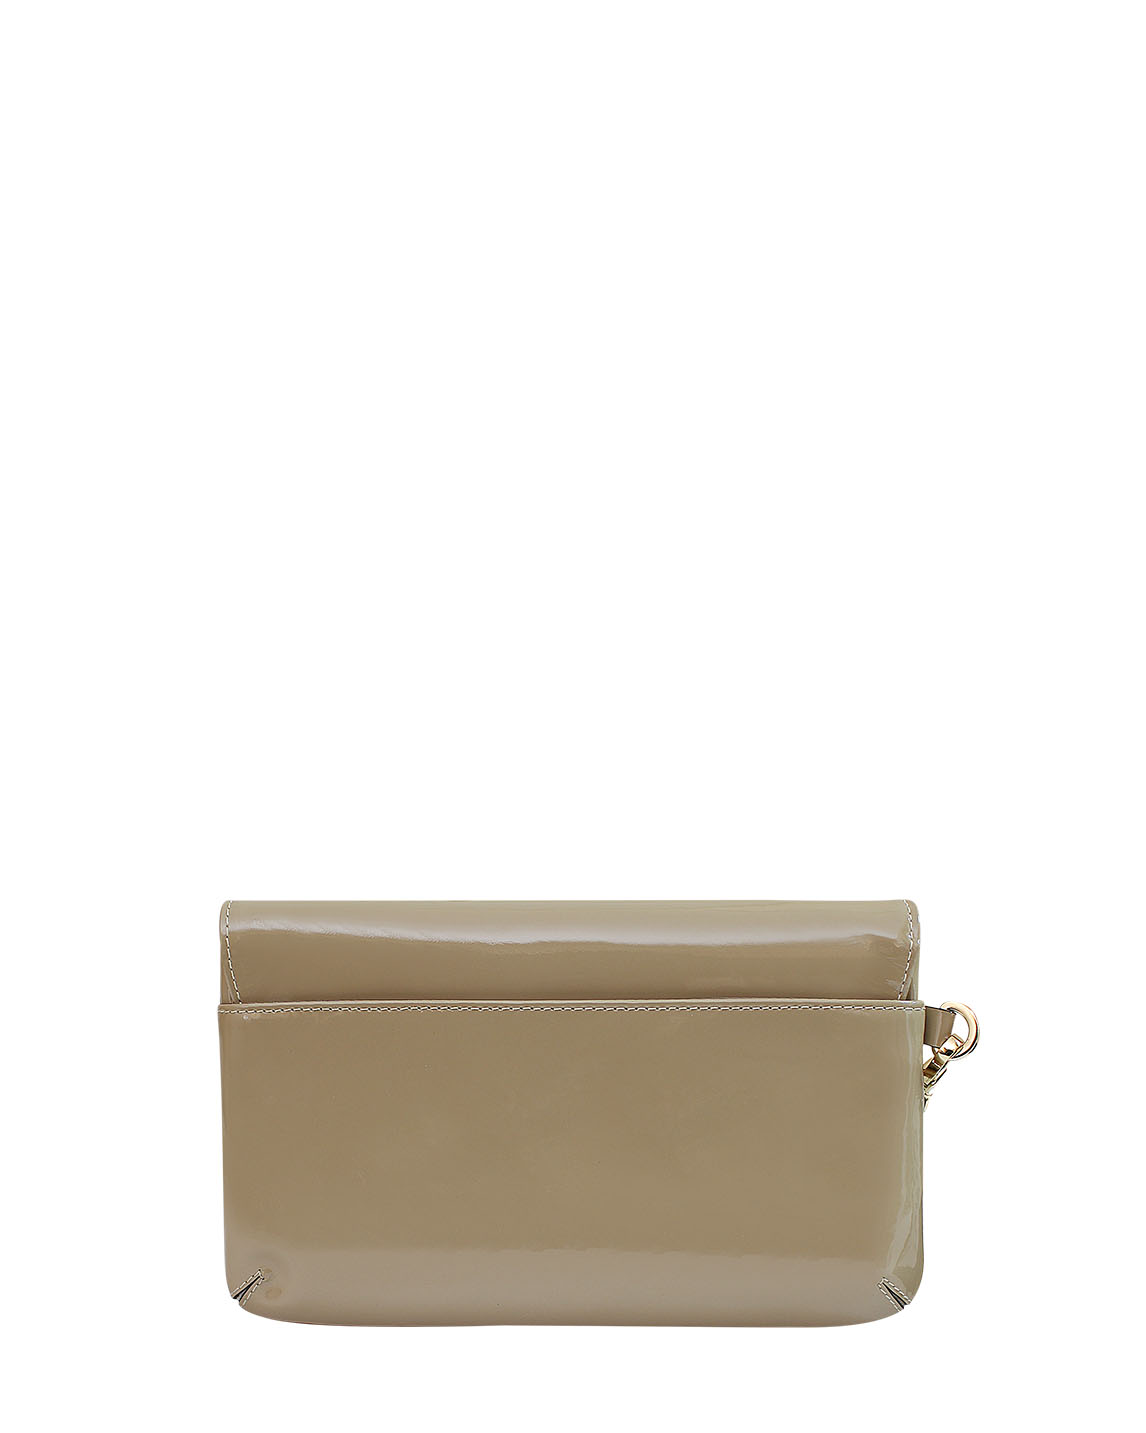 Carteras Clutch & Evening Bag DS-2455 Color Nude